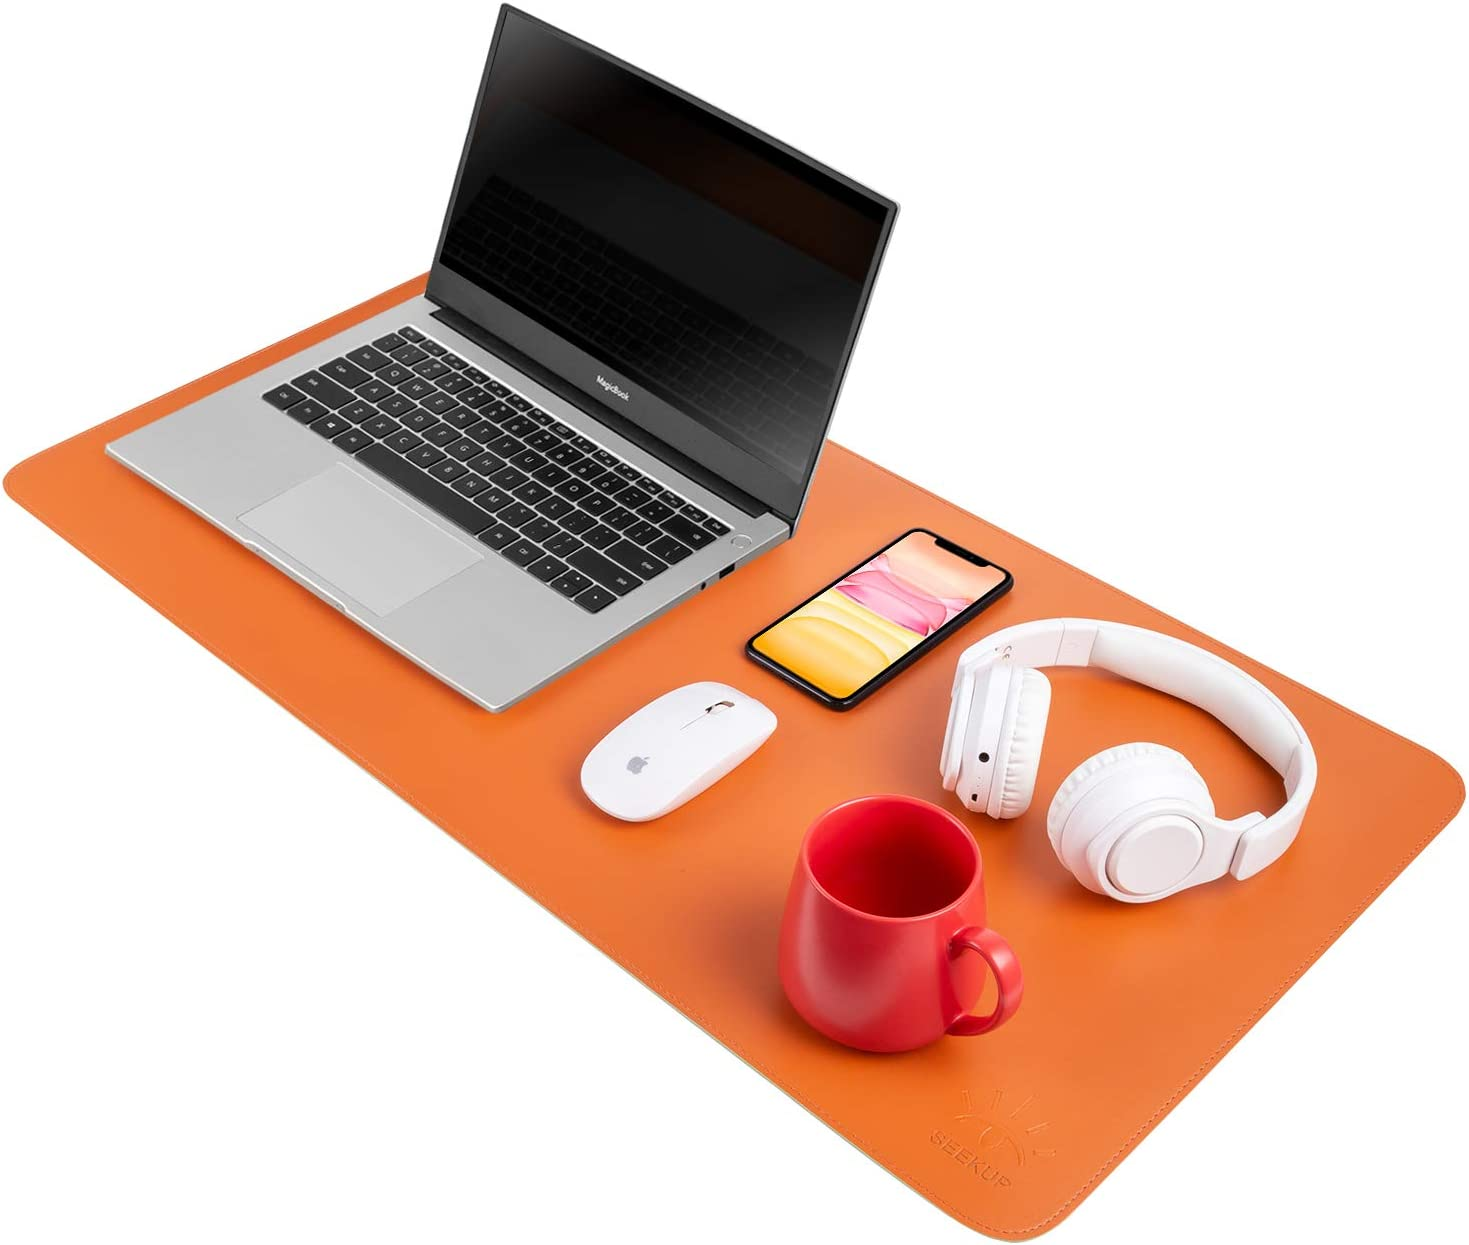 "Orange/Green Dual Sided PU Leather Desk Pad, Upgrade Sewing Office Laptop Mat, Waterproof Large Mouse Pad, Non-Slip Writing Mat Desk Blotter Protector for Office/Home, 31.5""x15.7"""